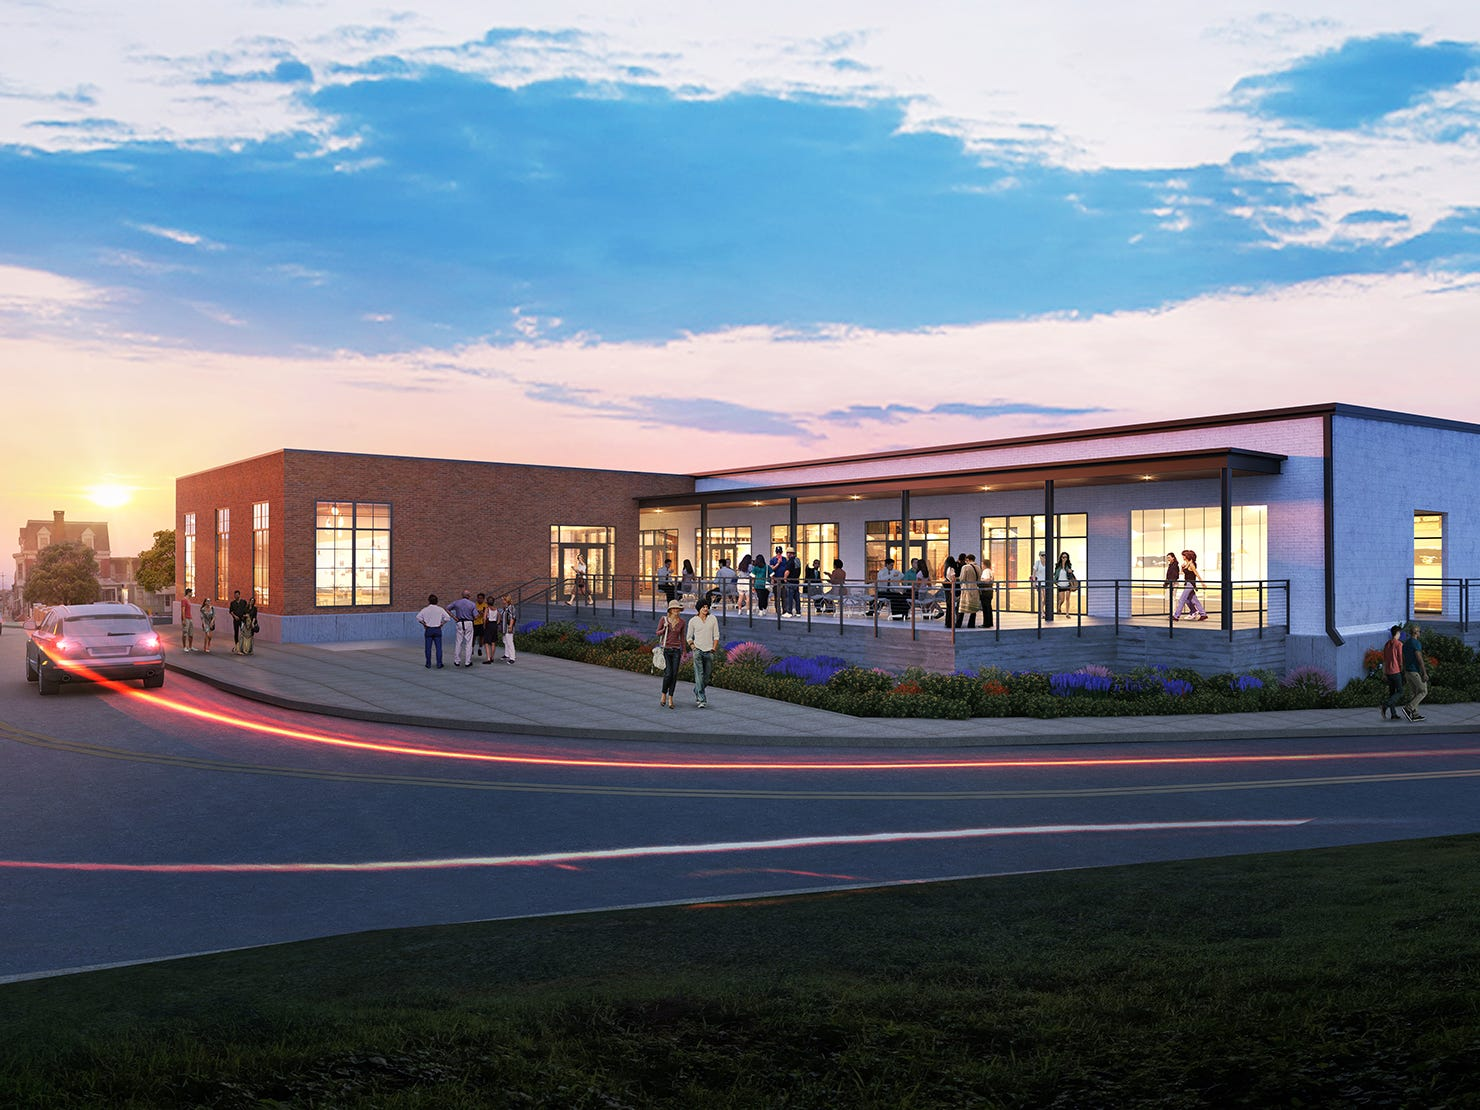 An artist's rendering of what one of the former Metso buildings might look like from the intersection of Arch Street and Loucks Mill Road. Metso Corp. closed down its manufacturing facility in York in 2016, but the old buildings may soon have new life.